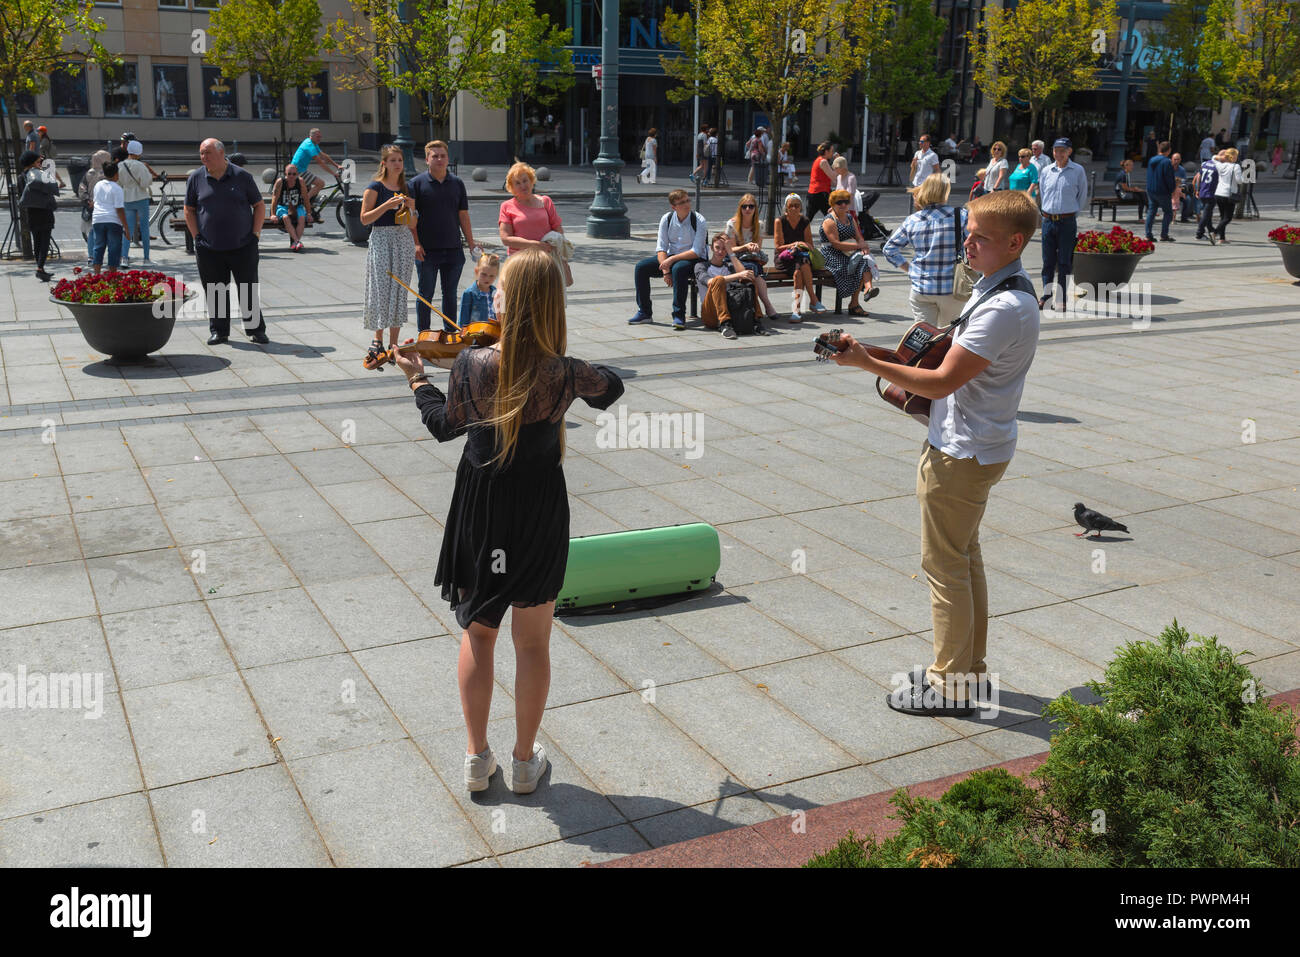 Young people busking, two young buskers entertain passersby in Gedimino Prospektas in Vilnius, Lithuania. - Stock Image